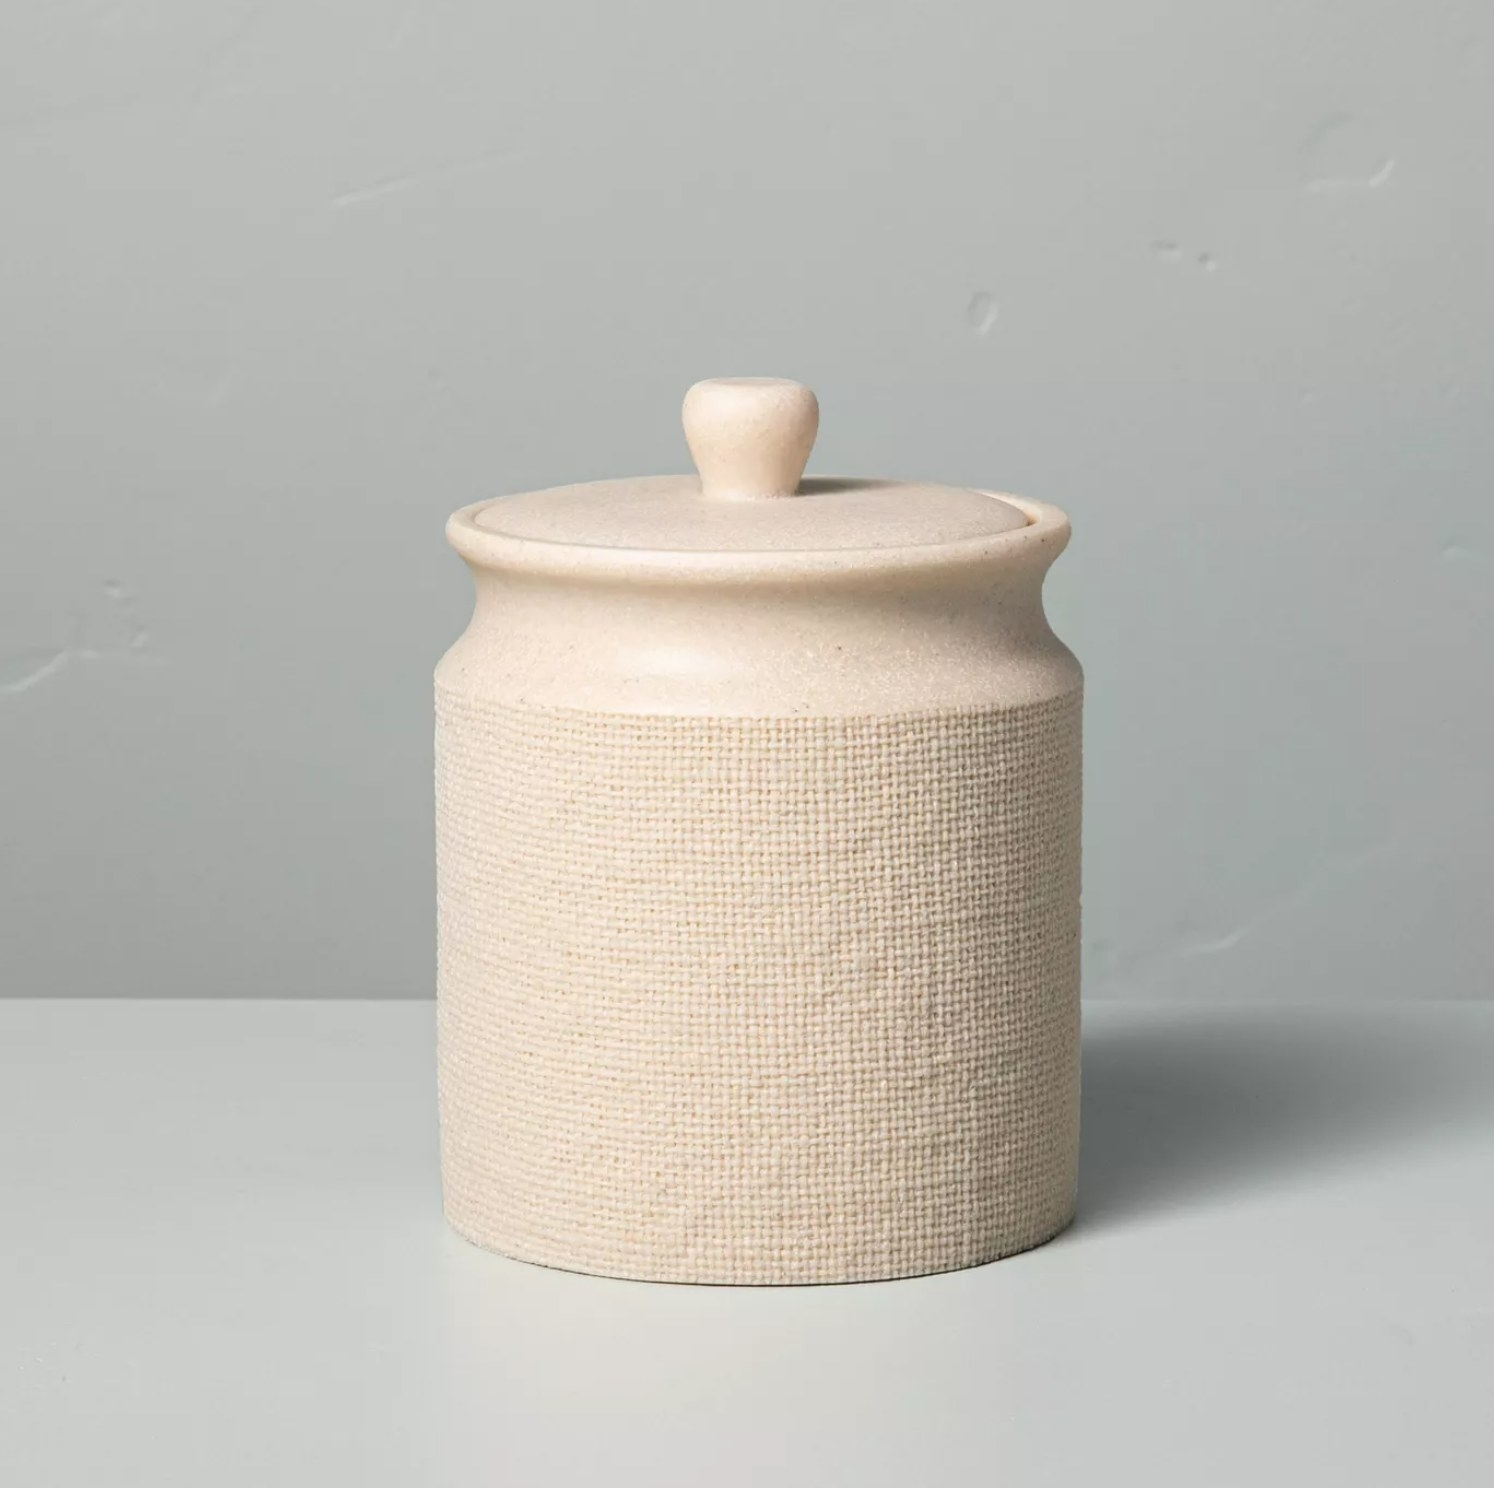 The cream canister